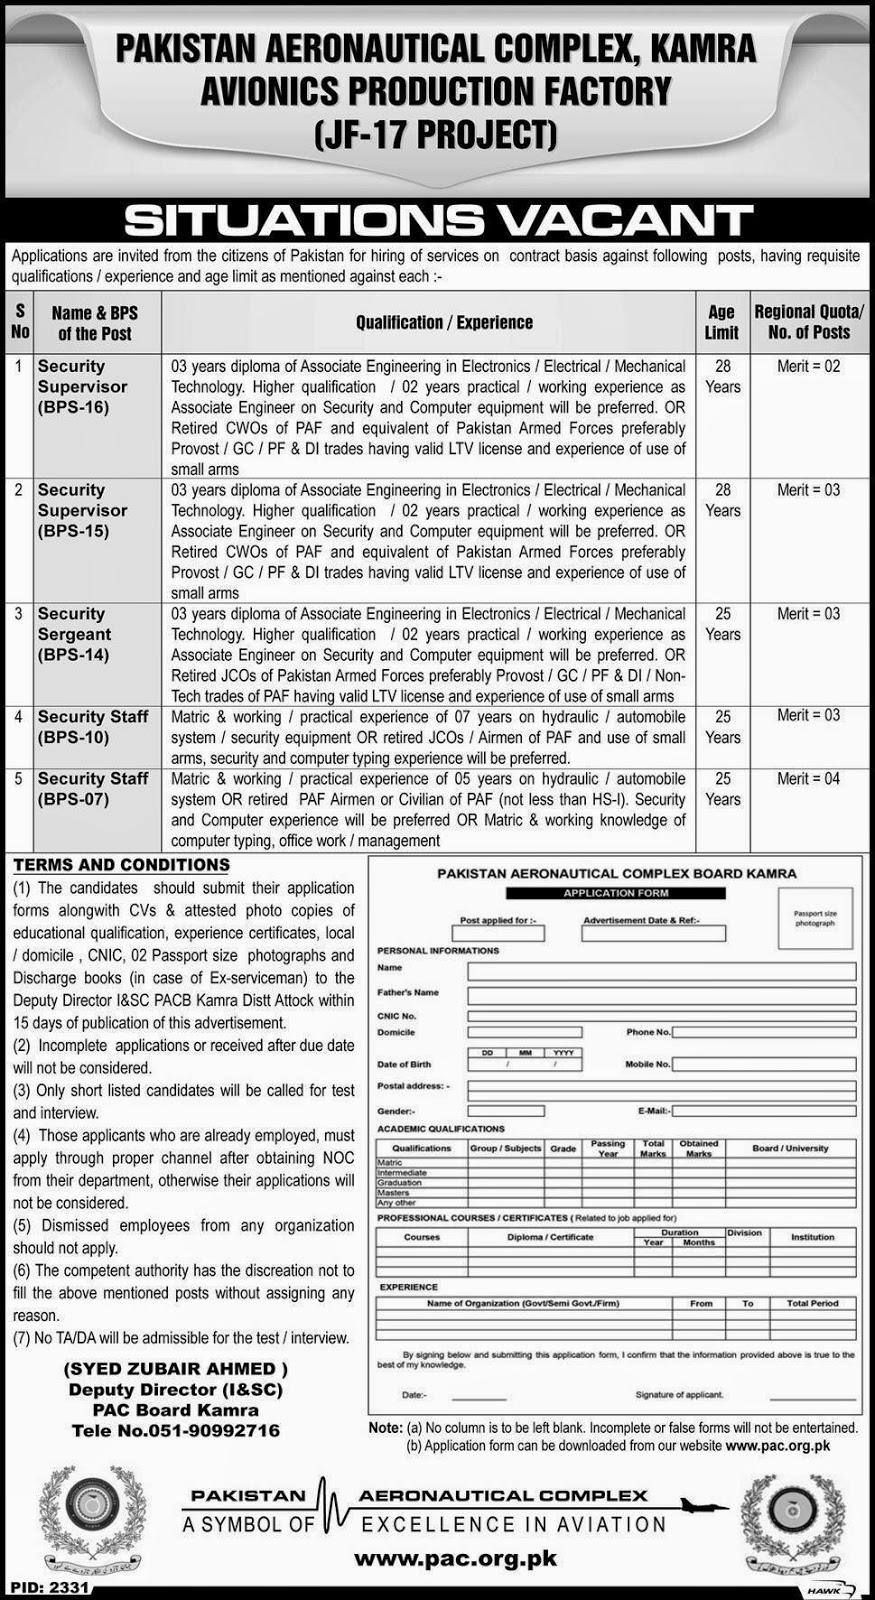 FIND    JOBS   IN    PAKISTAN    SECURITY   SUPERVISOR   &   SECURITY   SERGEANT   JOBS    IN    PAKISTAN     LATEST   JOB    IN    PAKISTAN